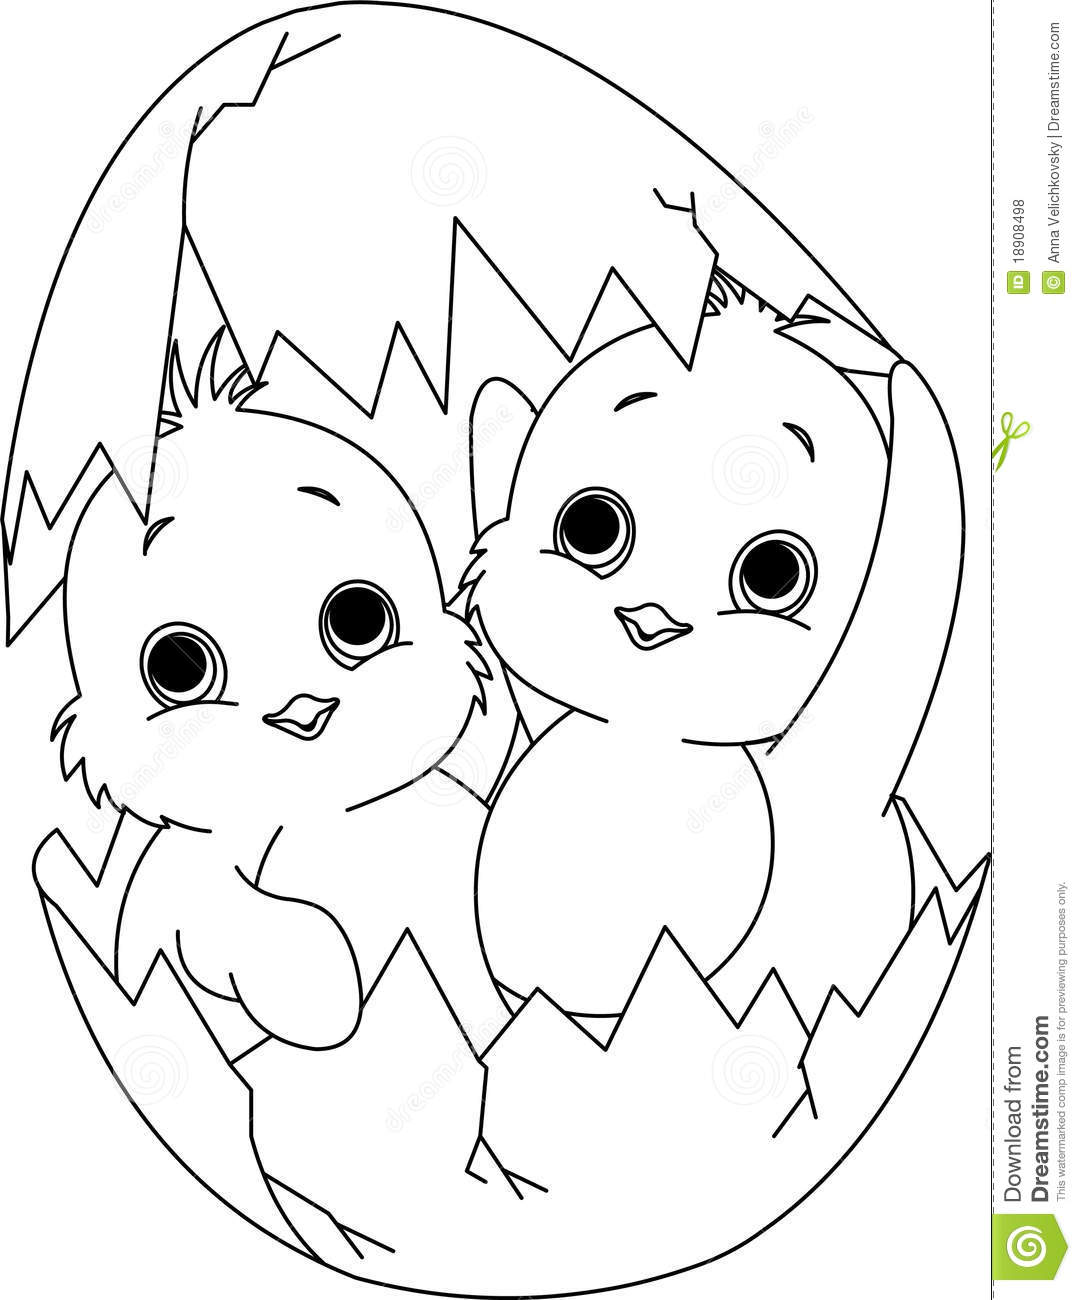 Download Coloring Pages  Chick Coloring Pages  Chick Coloring